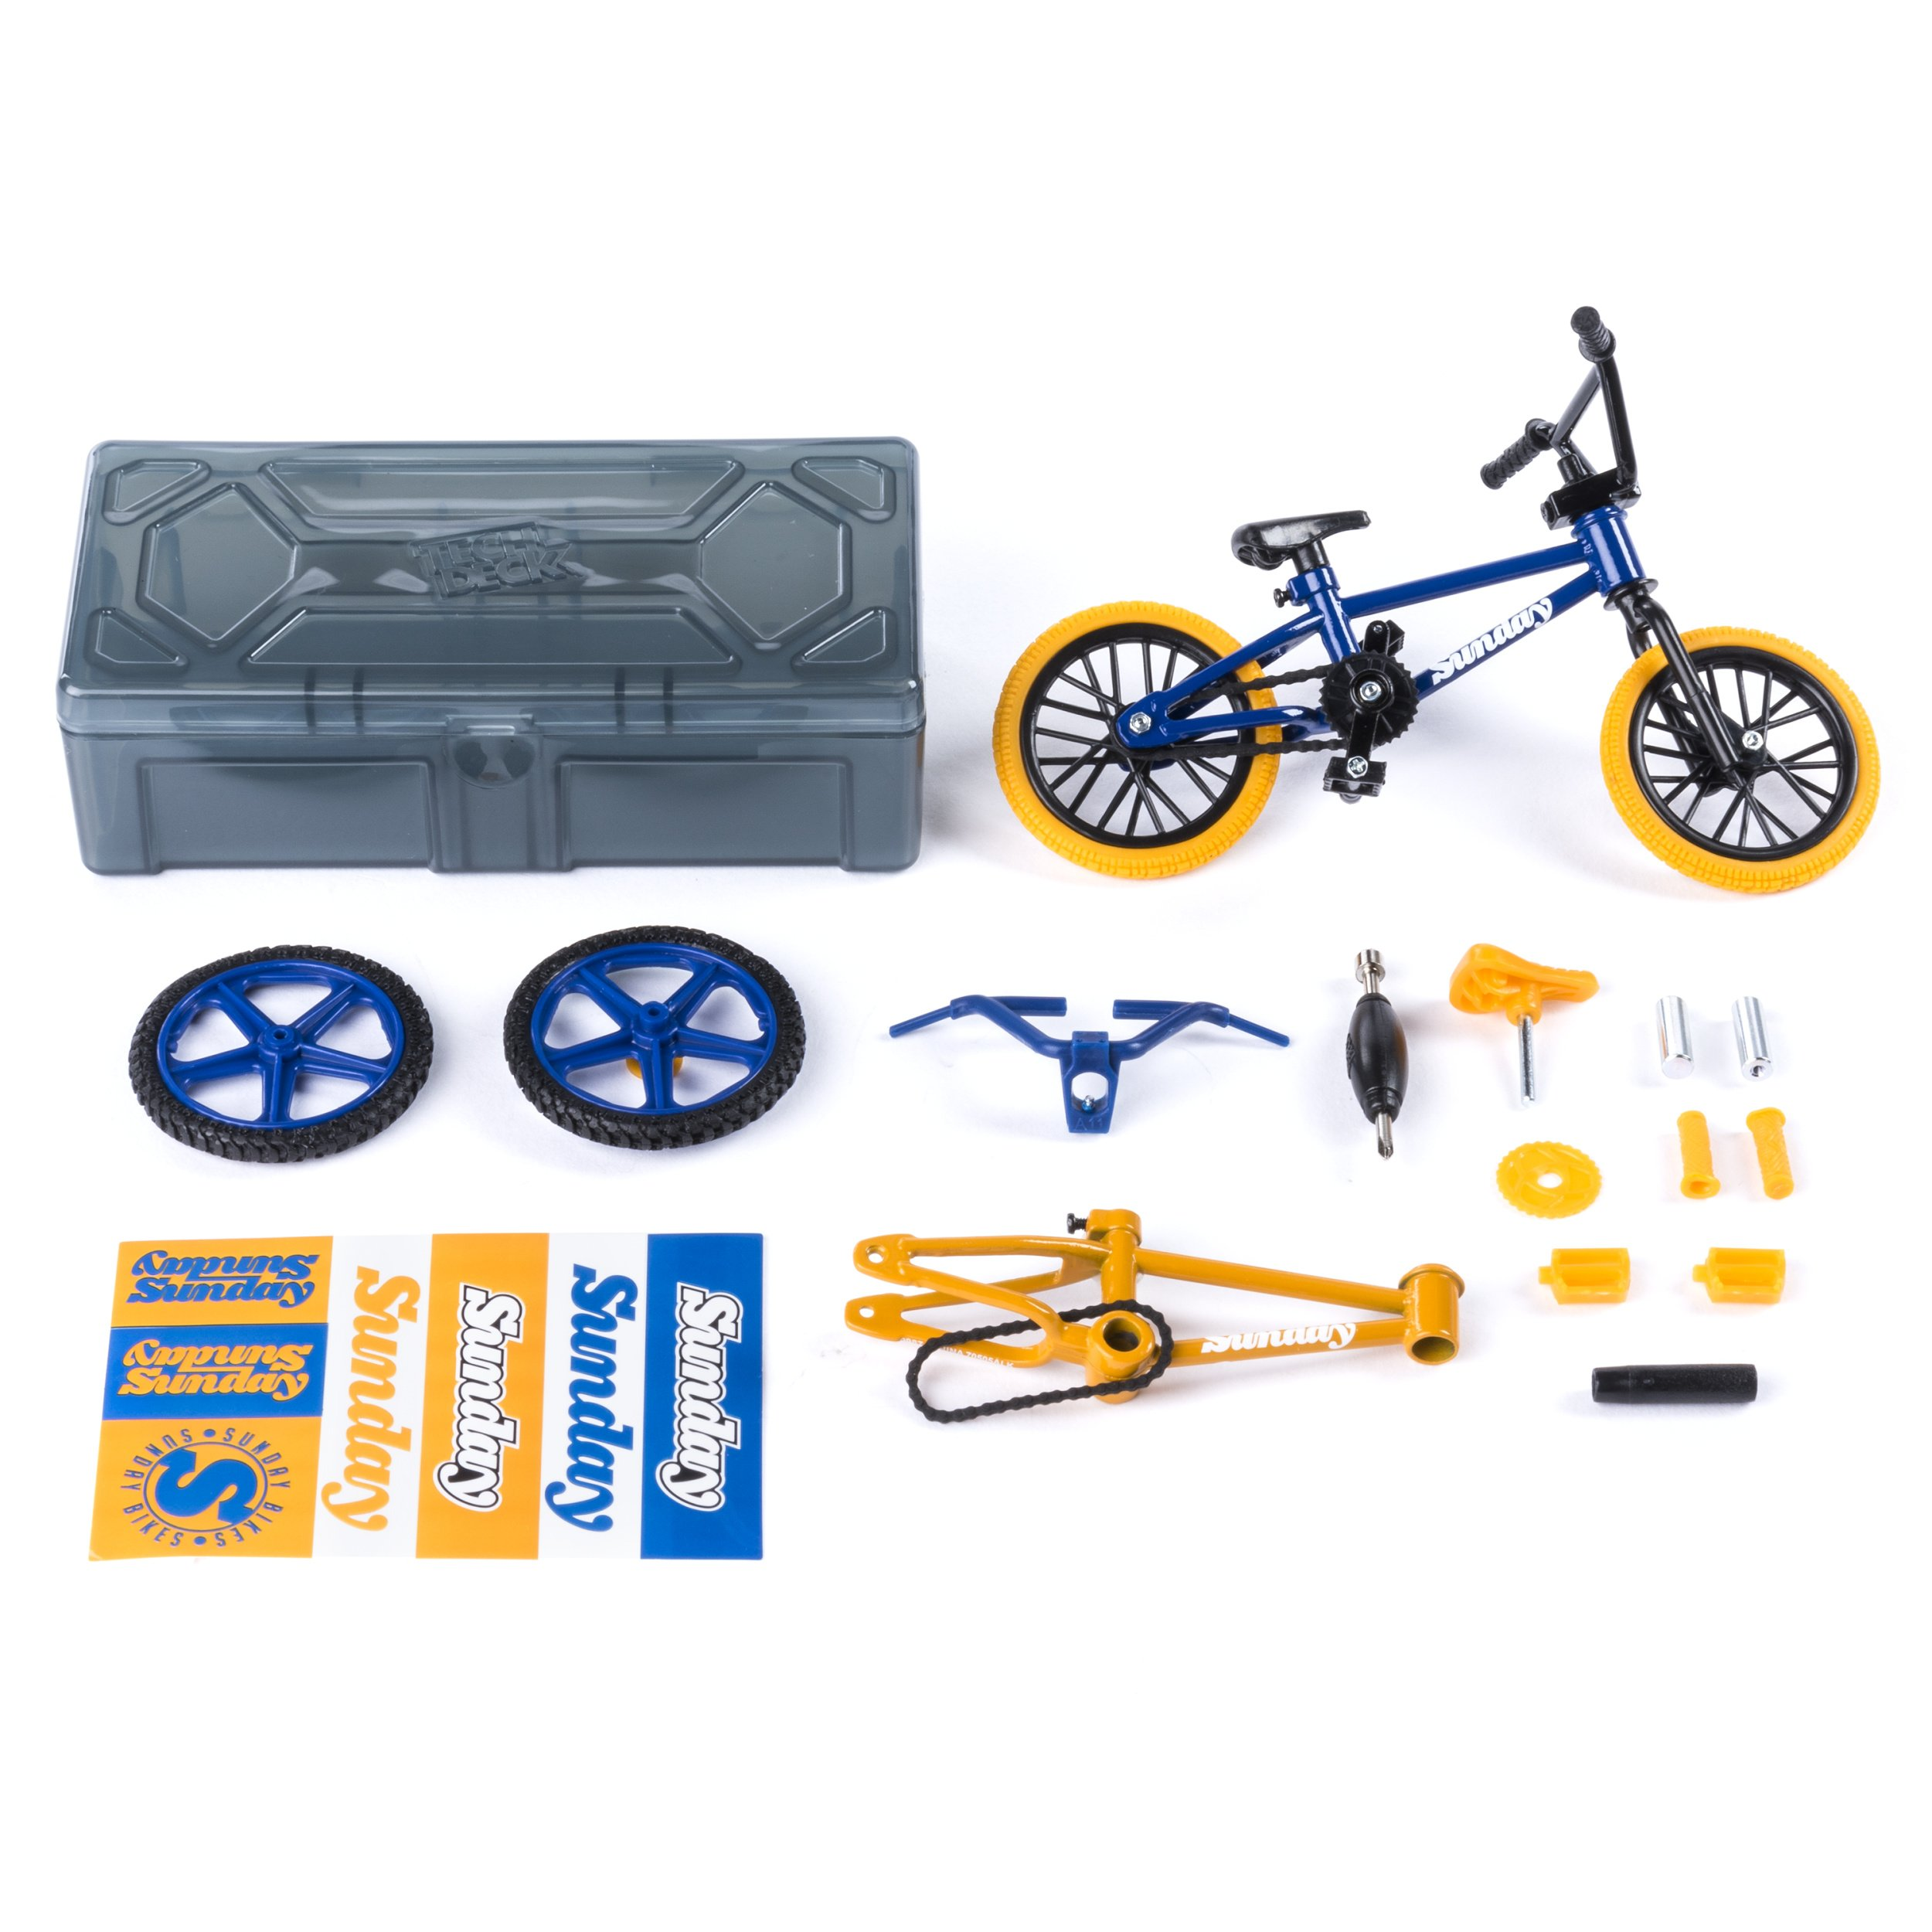 Tech Deck - BMX Bike Shop with Accessories and Storage Container - Sunday Bikes - Blue & Yellow by Tech Deck